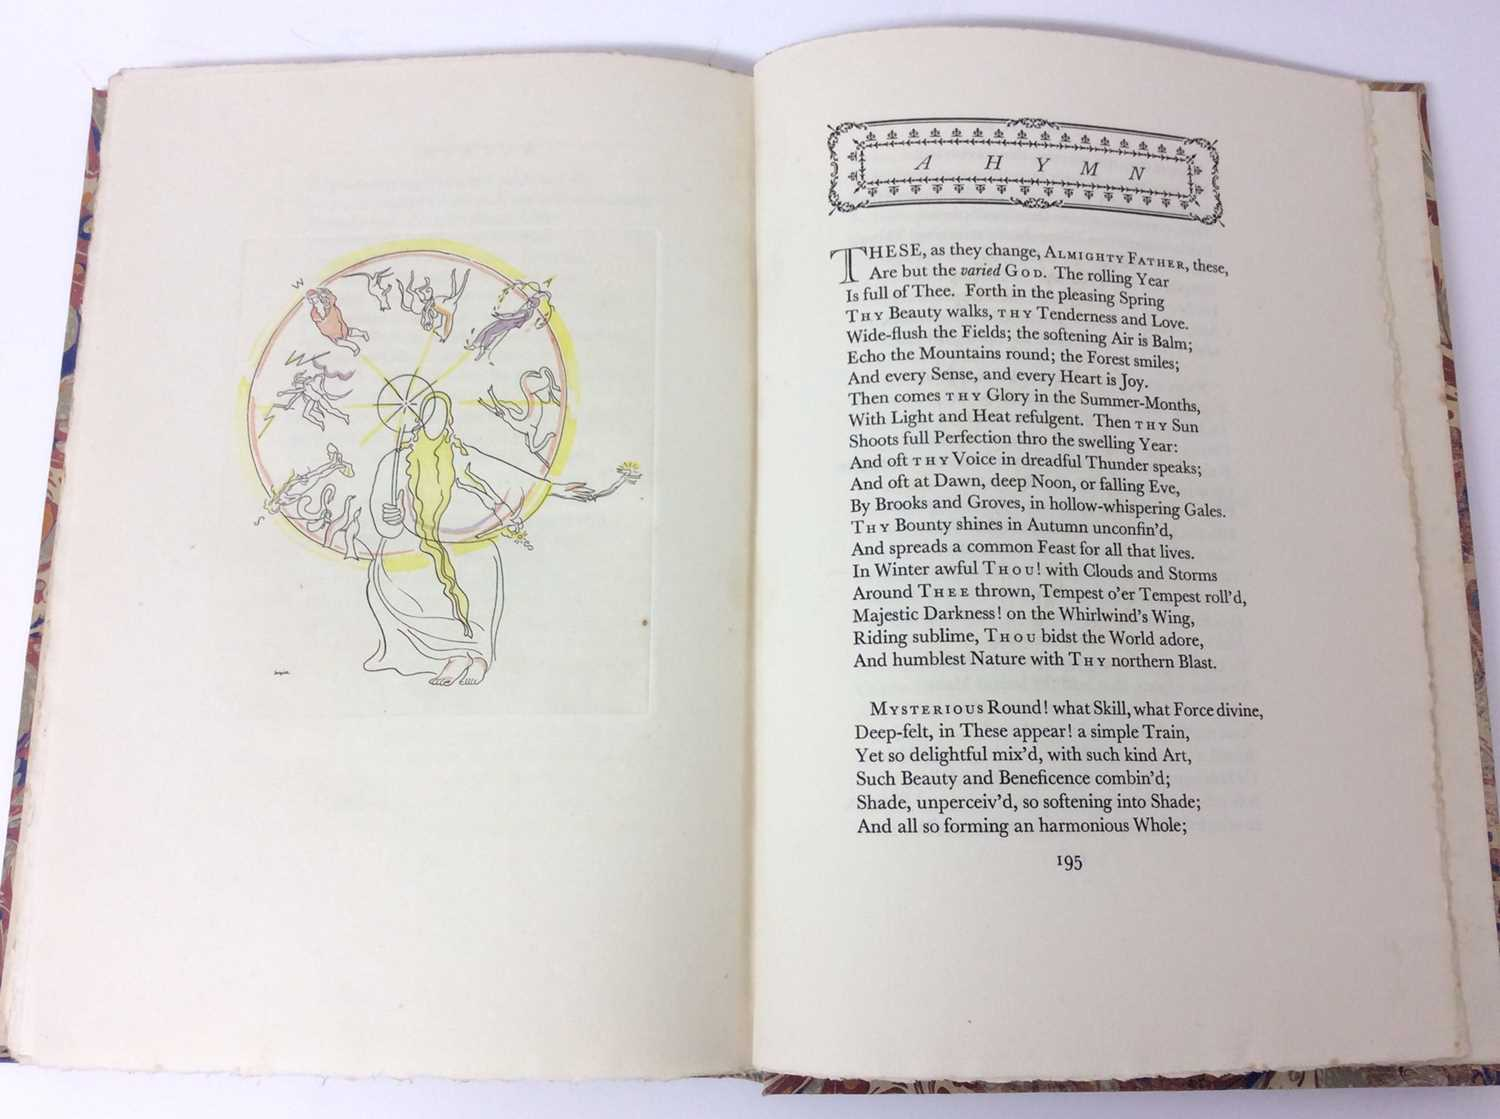 The Seasons by James Thomson, Nonesuch Press 1927, numbered 186 out of 1,500 copies, 1927 - Image 9 of 10